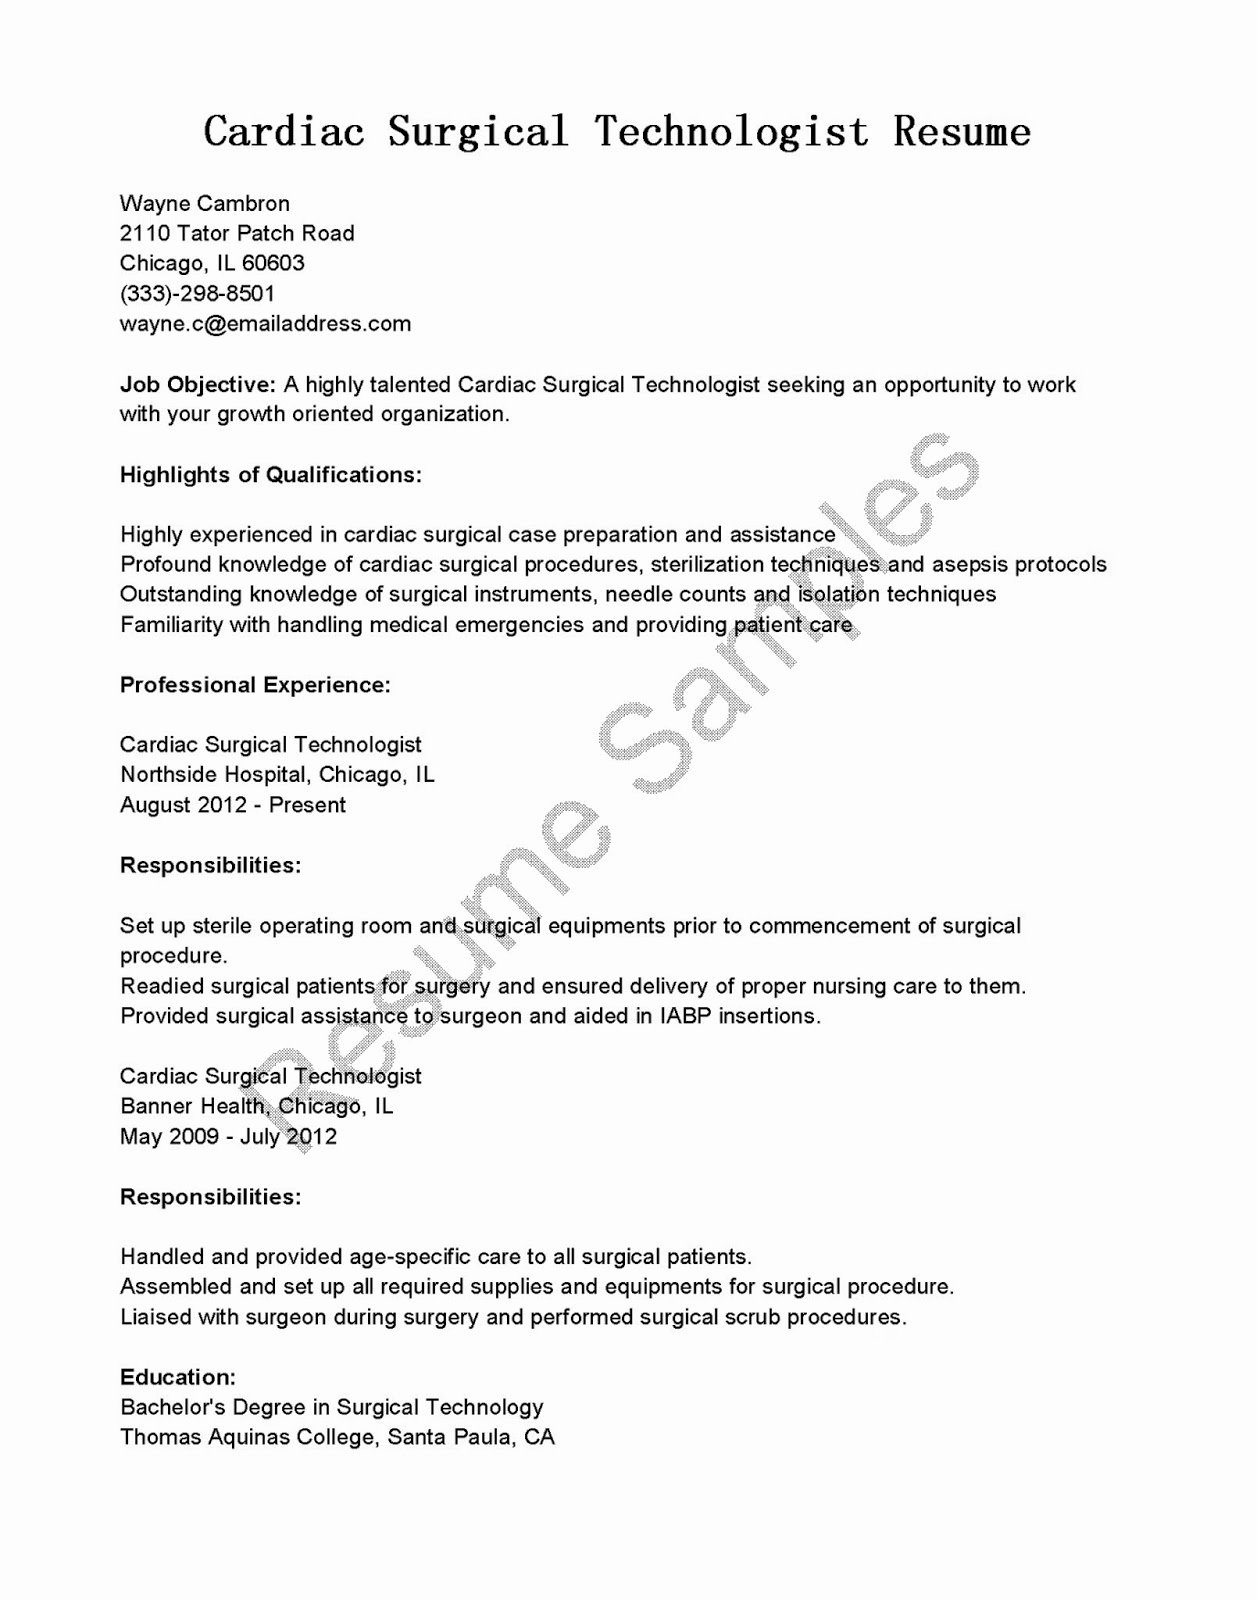 Resume Samples Cardiac Surgical Technologist Resume Sample